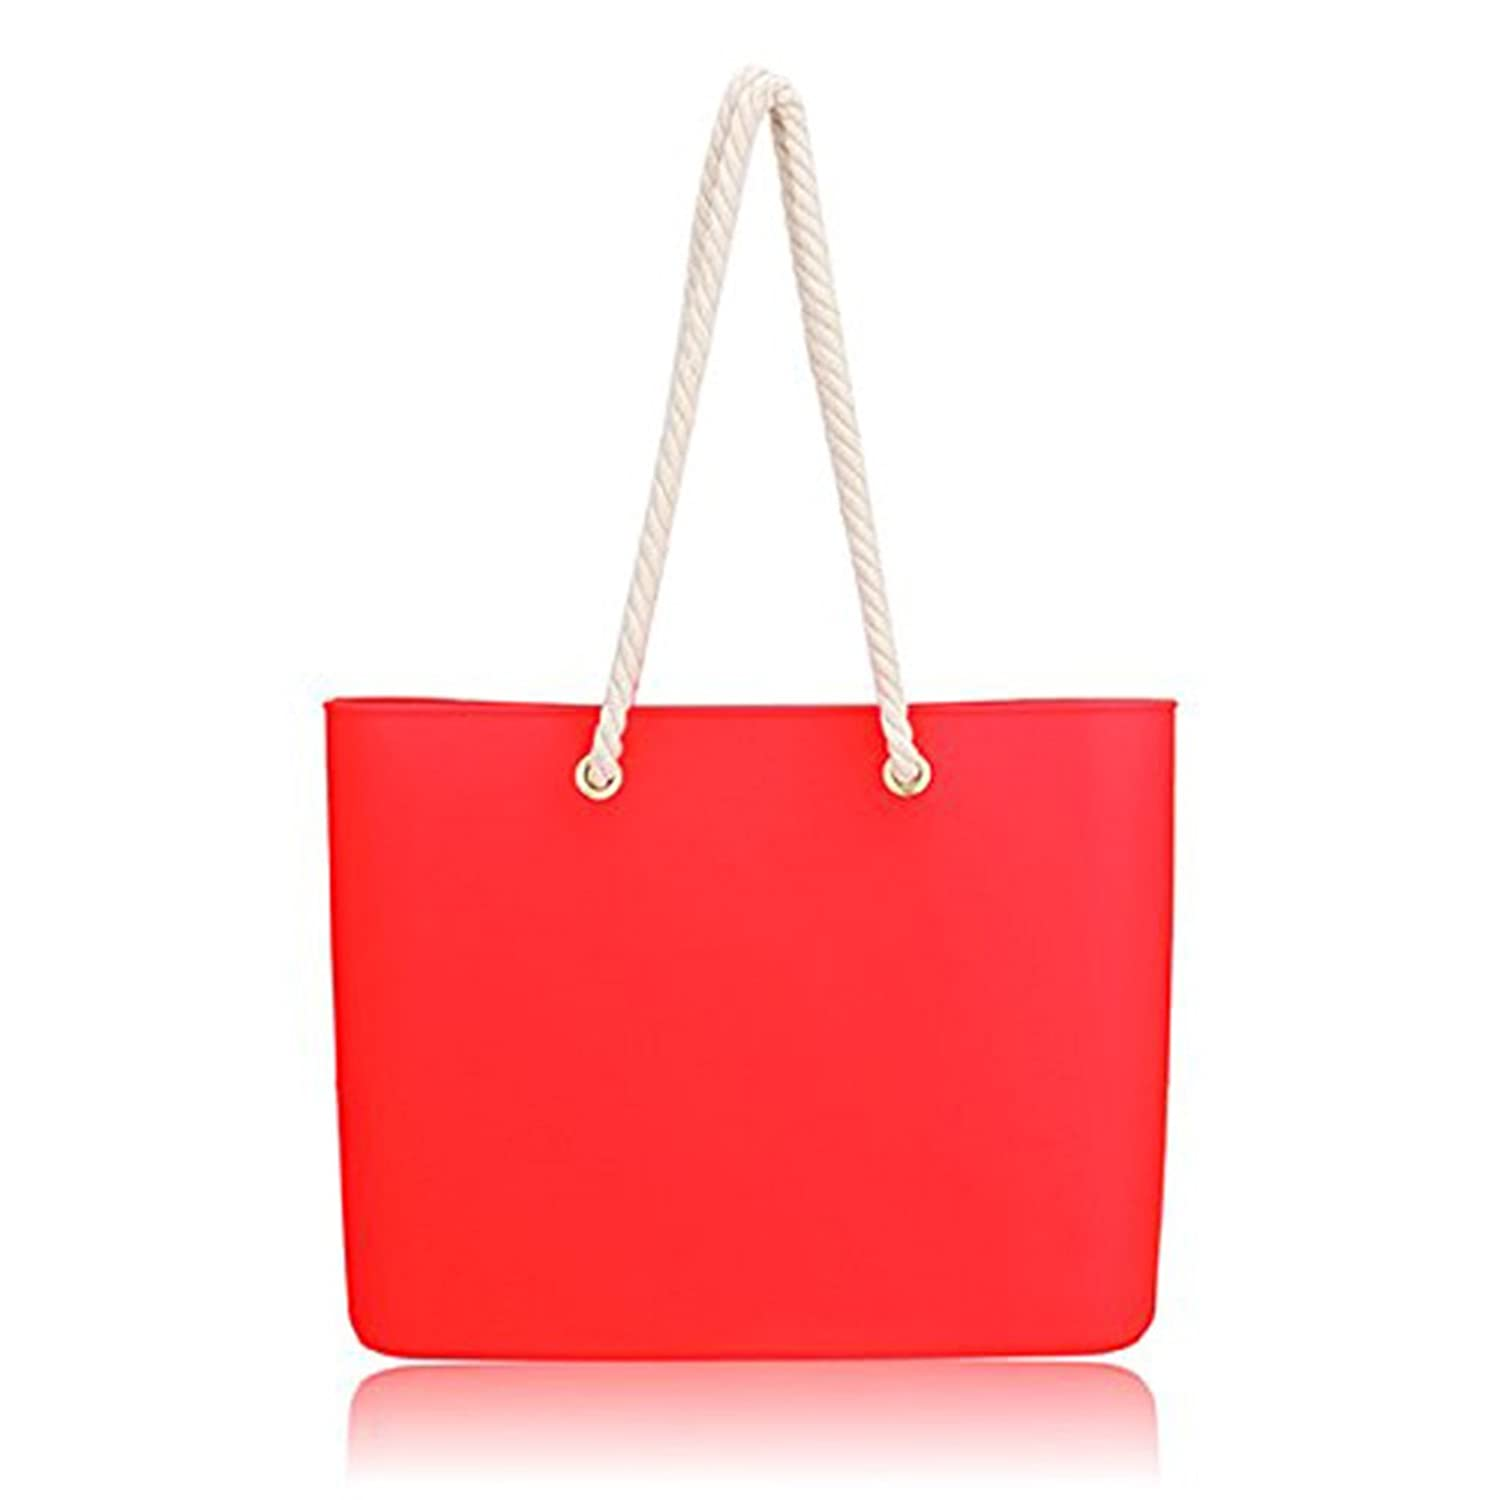 Silica Gel Transparent Waterproof Totes Women Candy Color Handbags Casual Shoulder Bags Beach Bags.